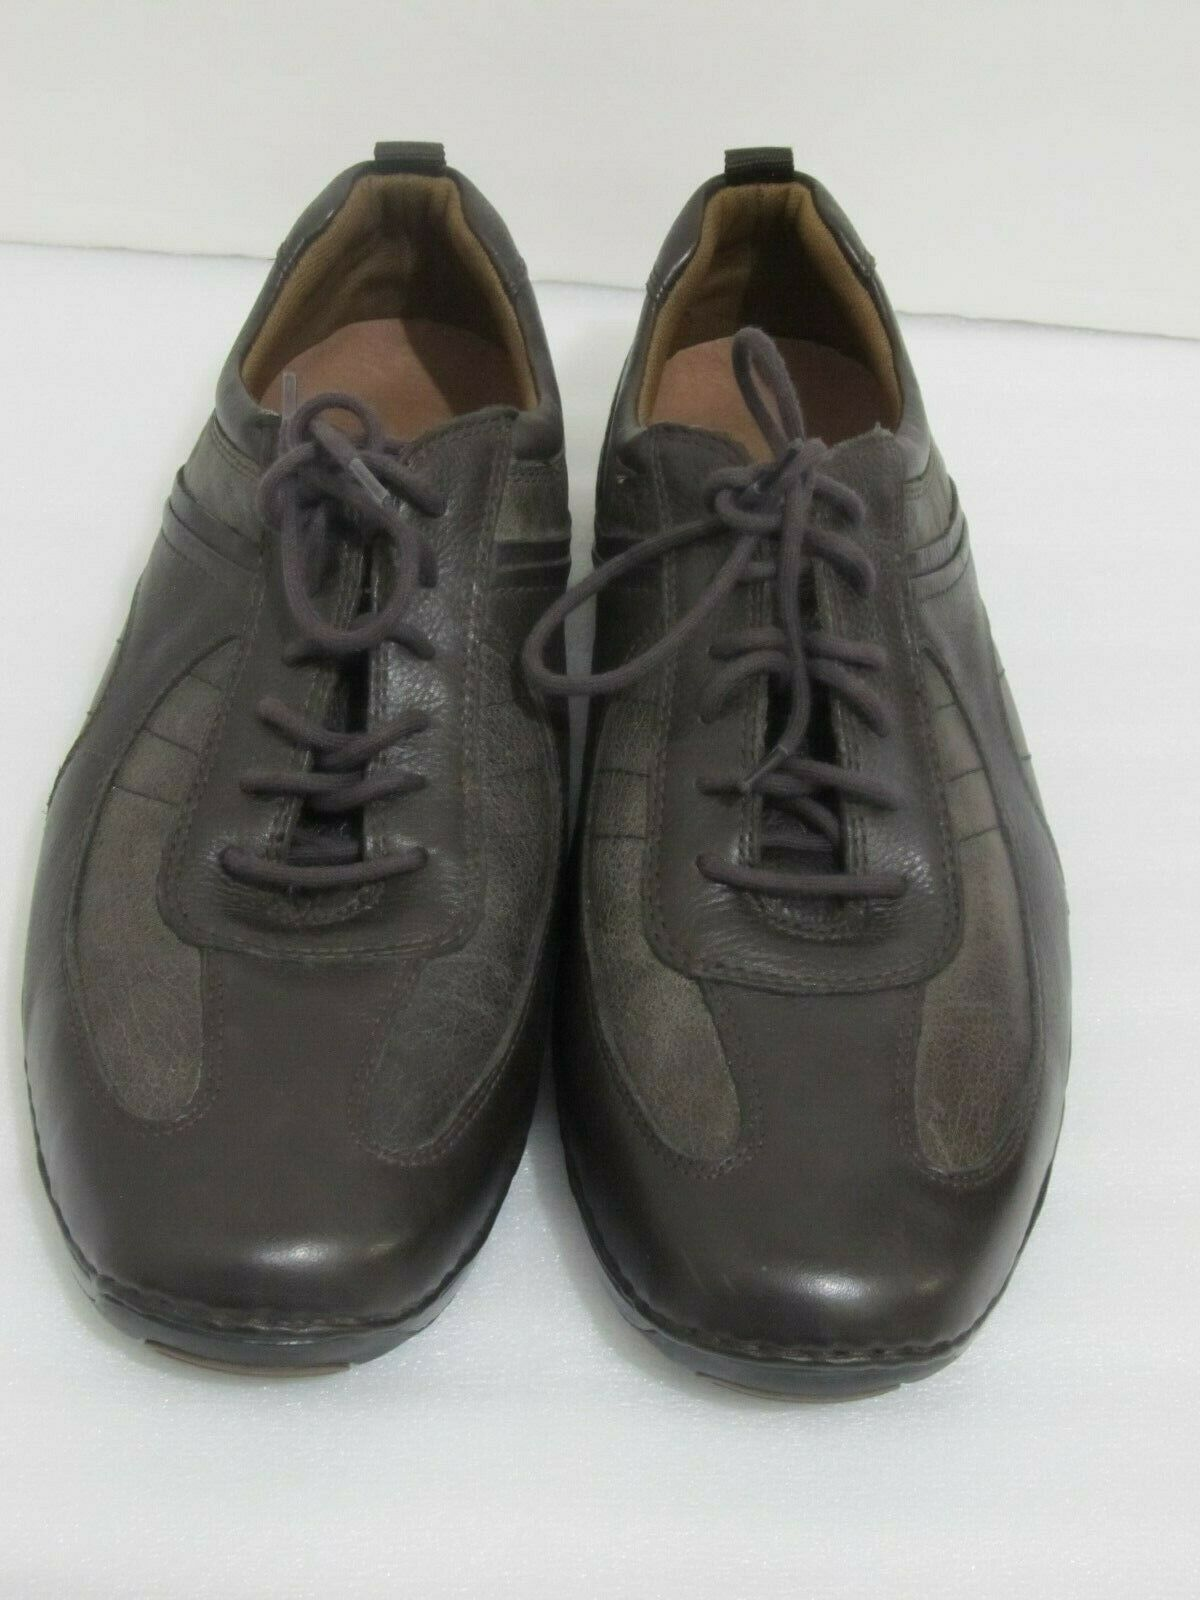 Rockport Signature Series  Men's Brown Leather DMX Casual Oxfords Sz 10M